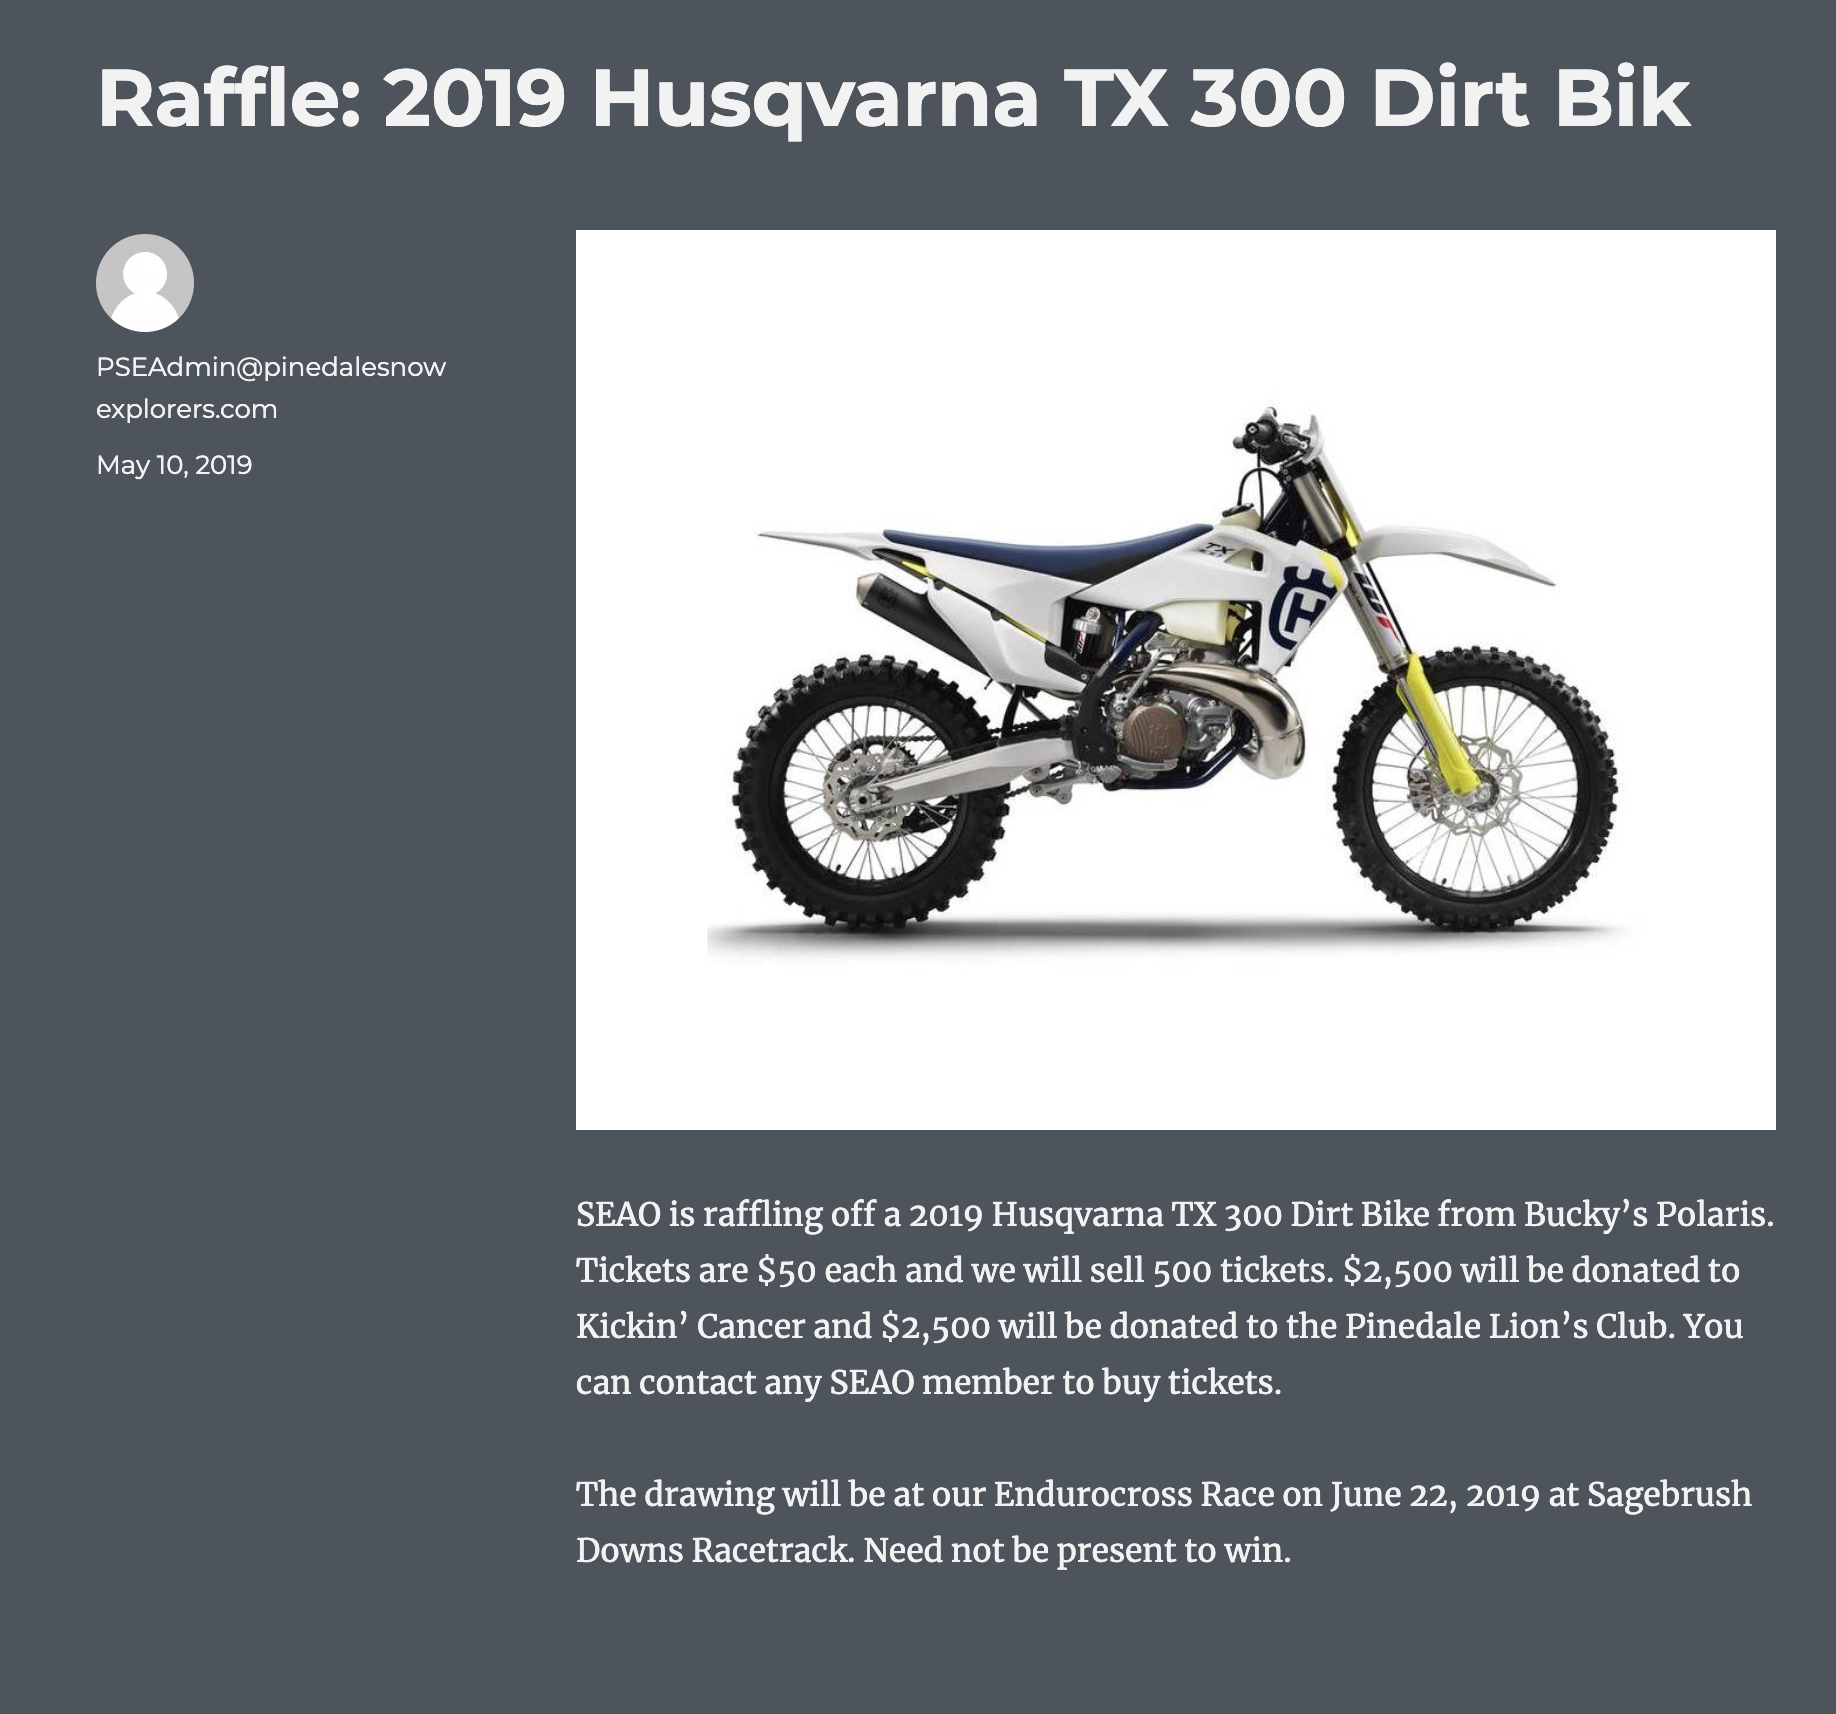 Pinedale Snow Explorers Raffle - June 22, 2019Sagebrush Downs Racetrack